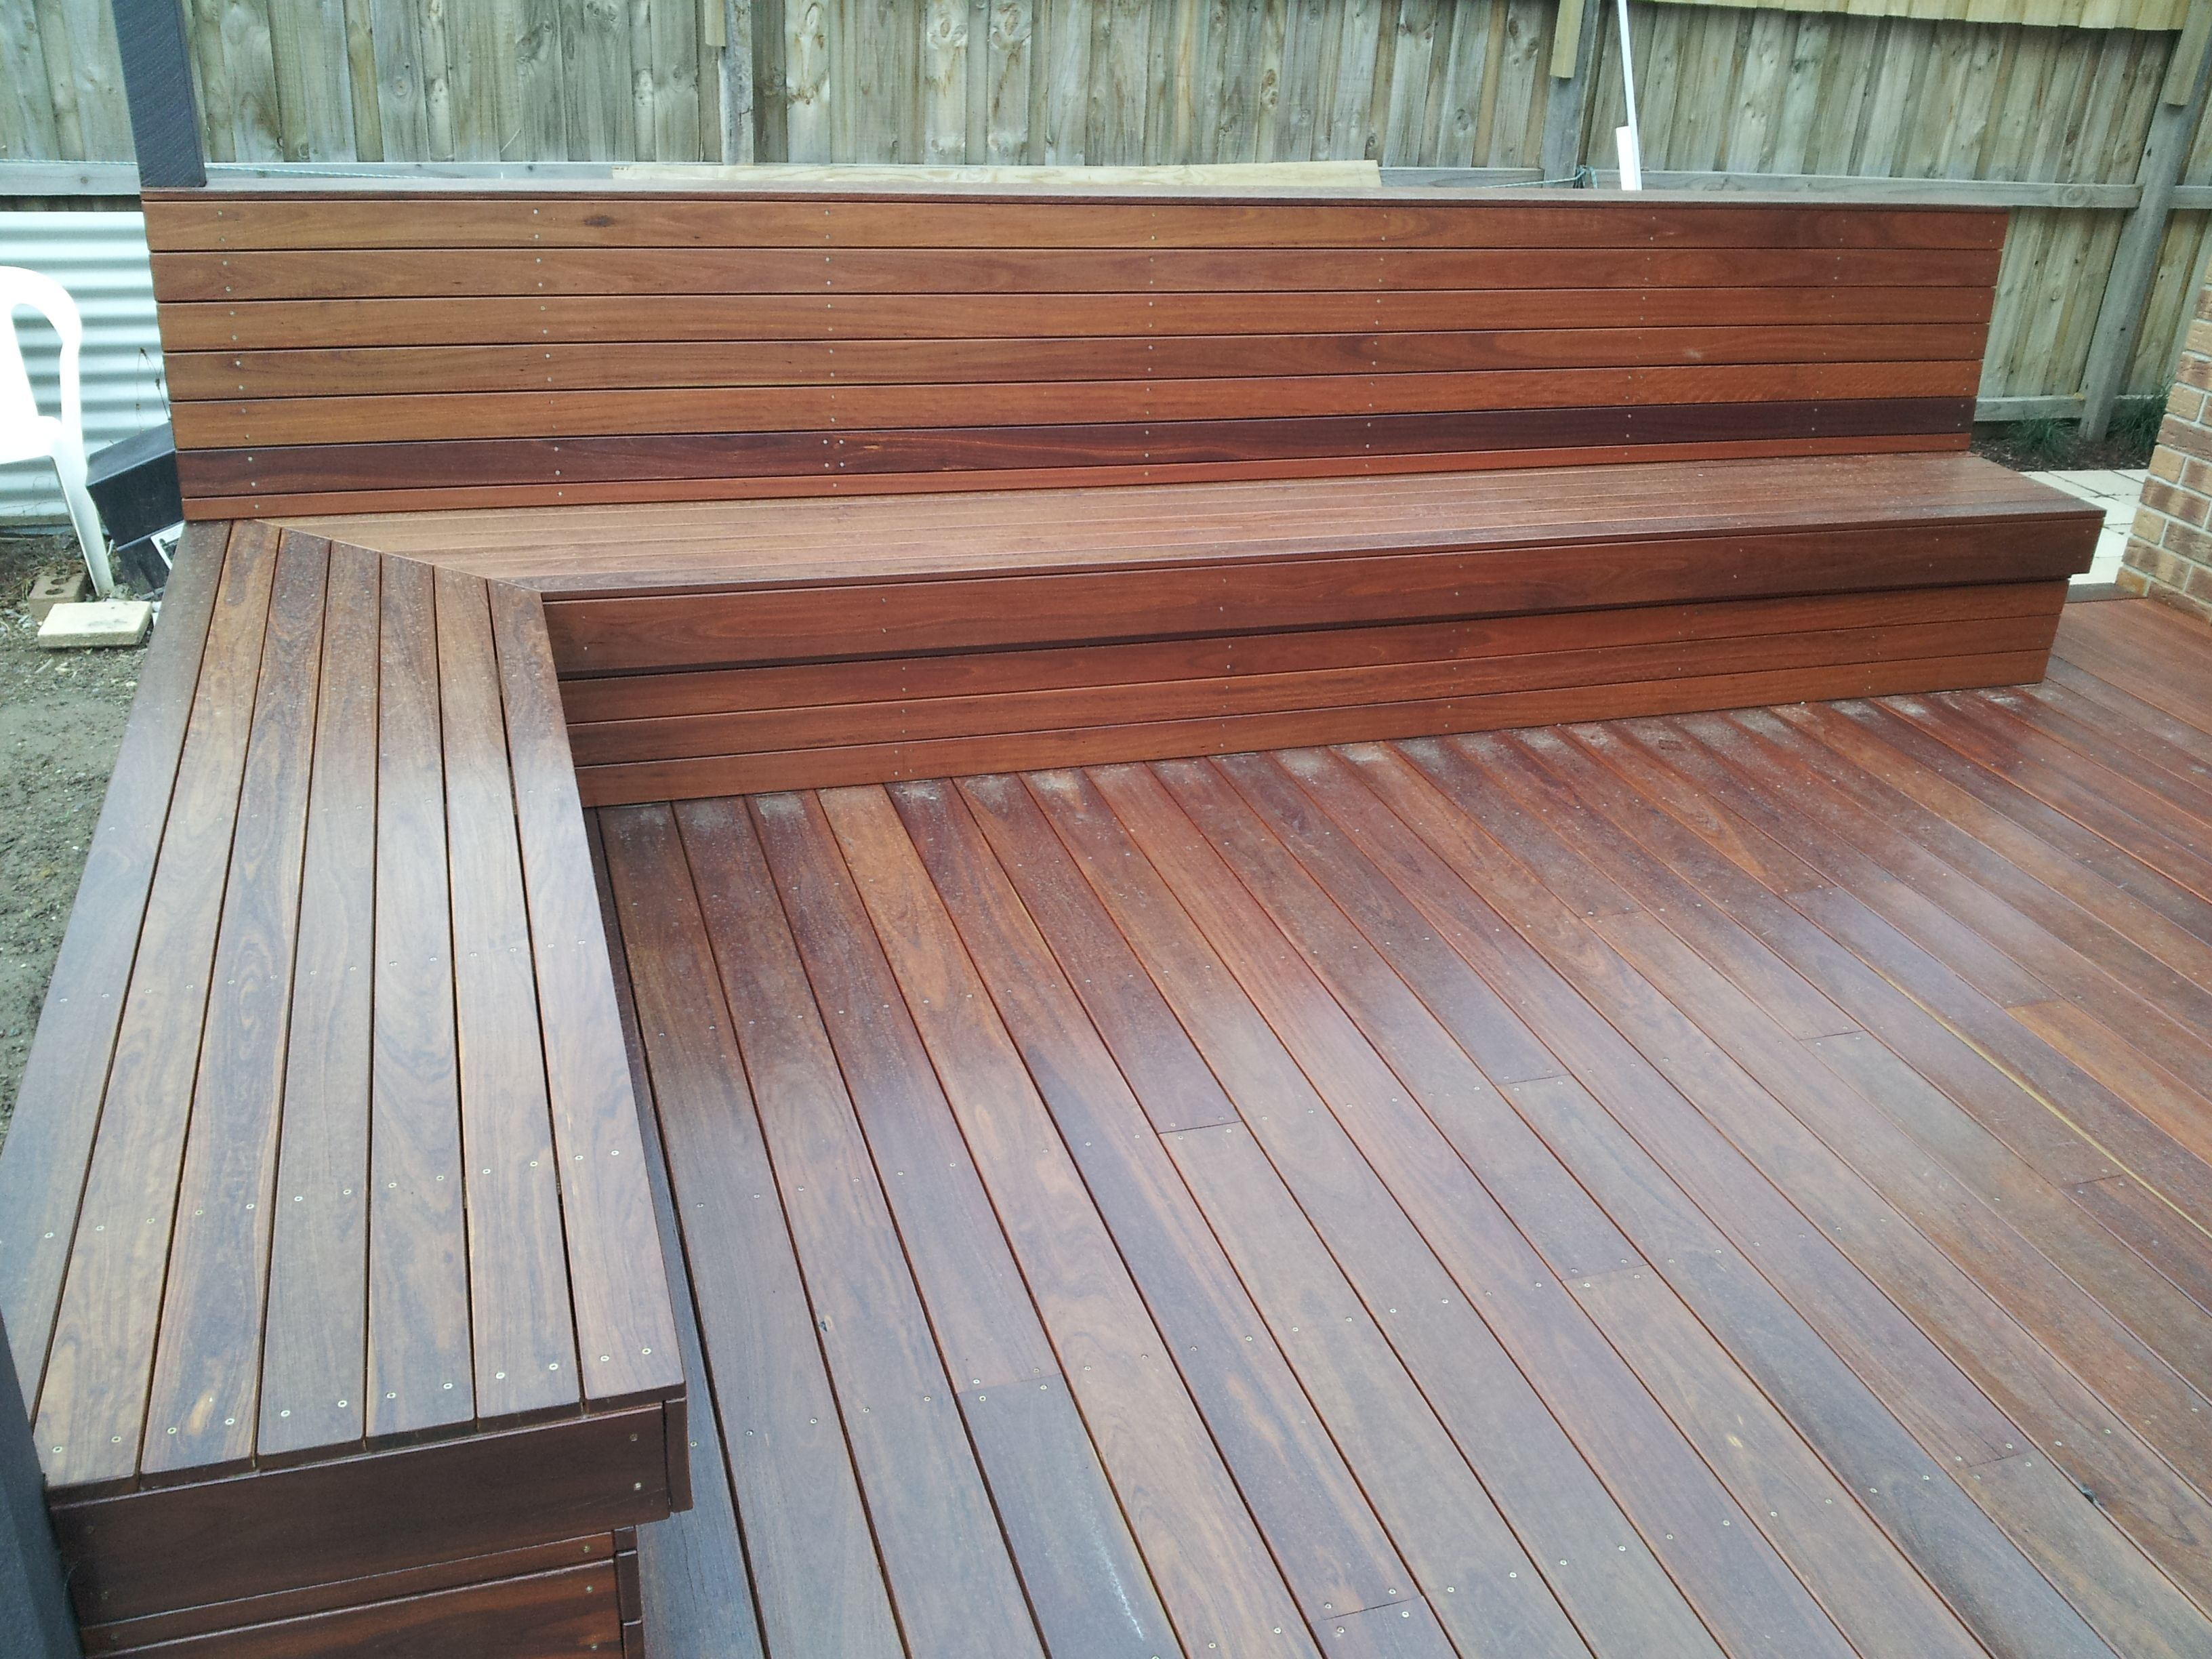 Installation Of A New Outdoor Deck With Seats Diy Deck Wood Plastic Composite Deck Design